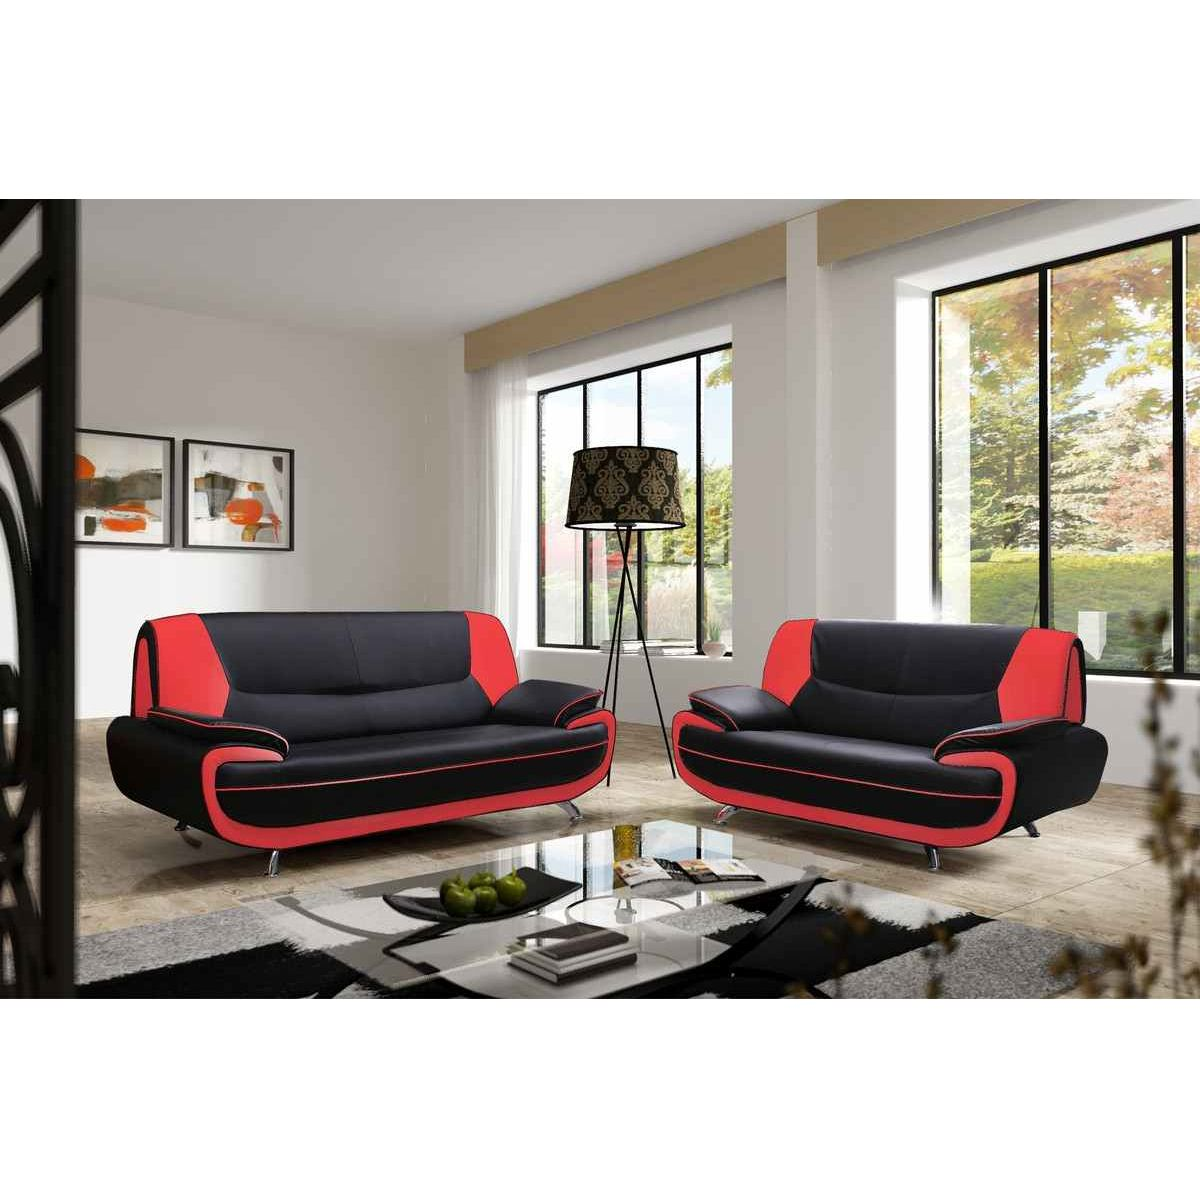 deco in paris canape 3 2 places noir et rouge marita. Black Bedroom Furniture Sets. Home Design Ideas